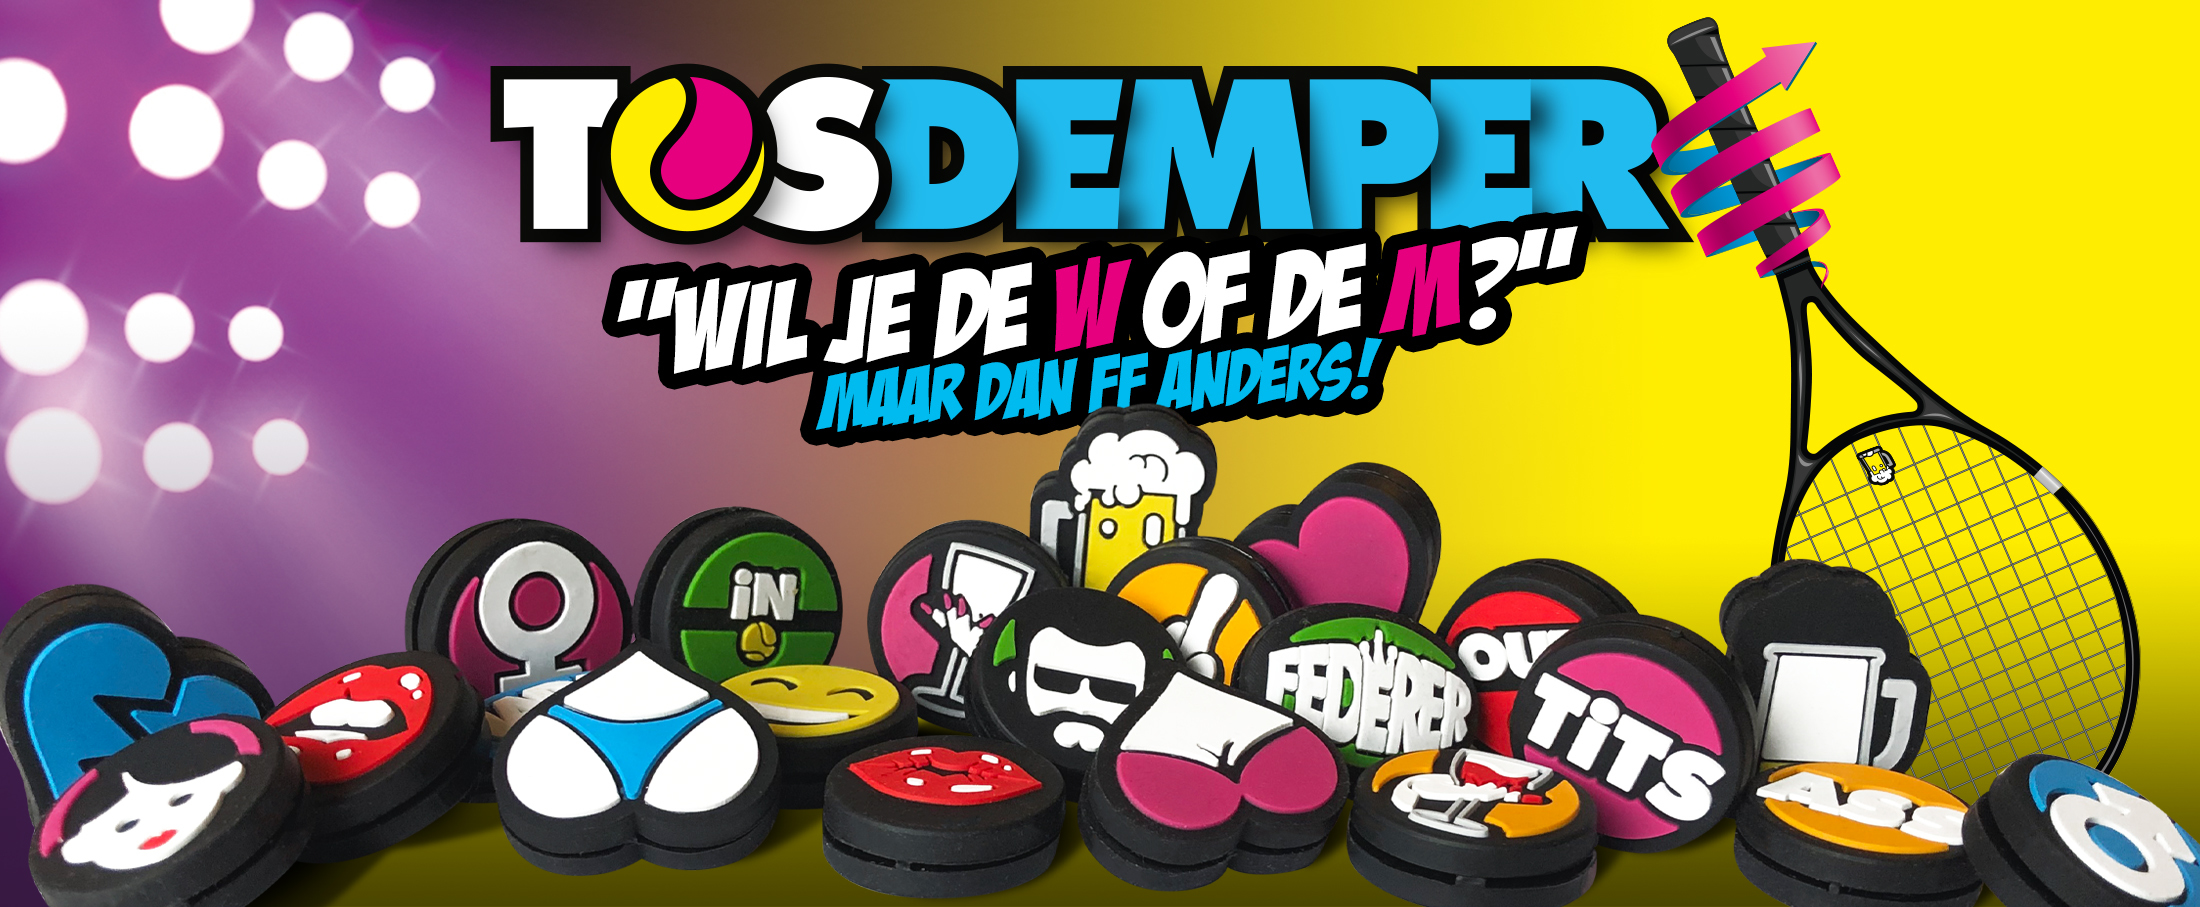 Tosdempers